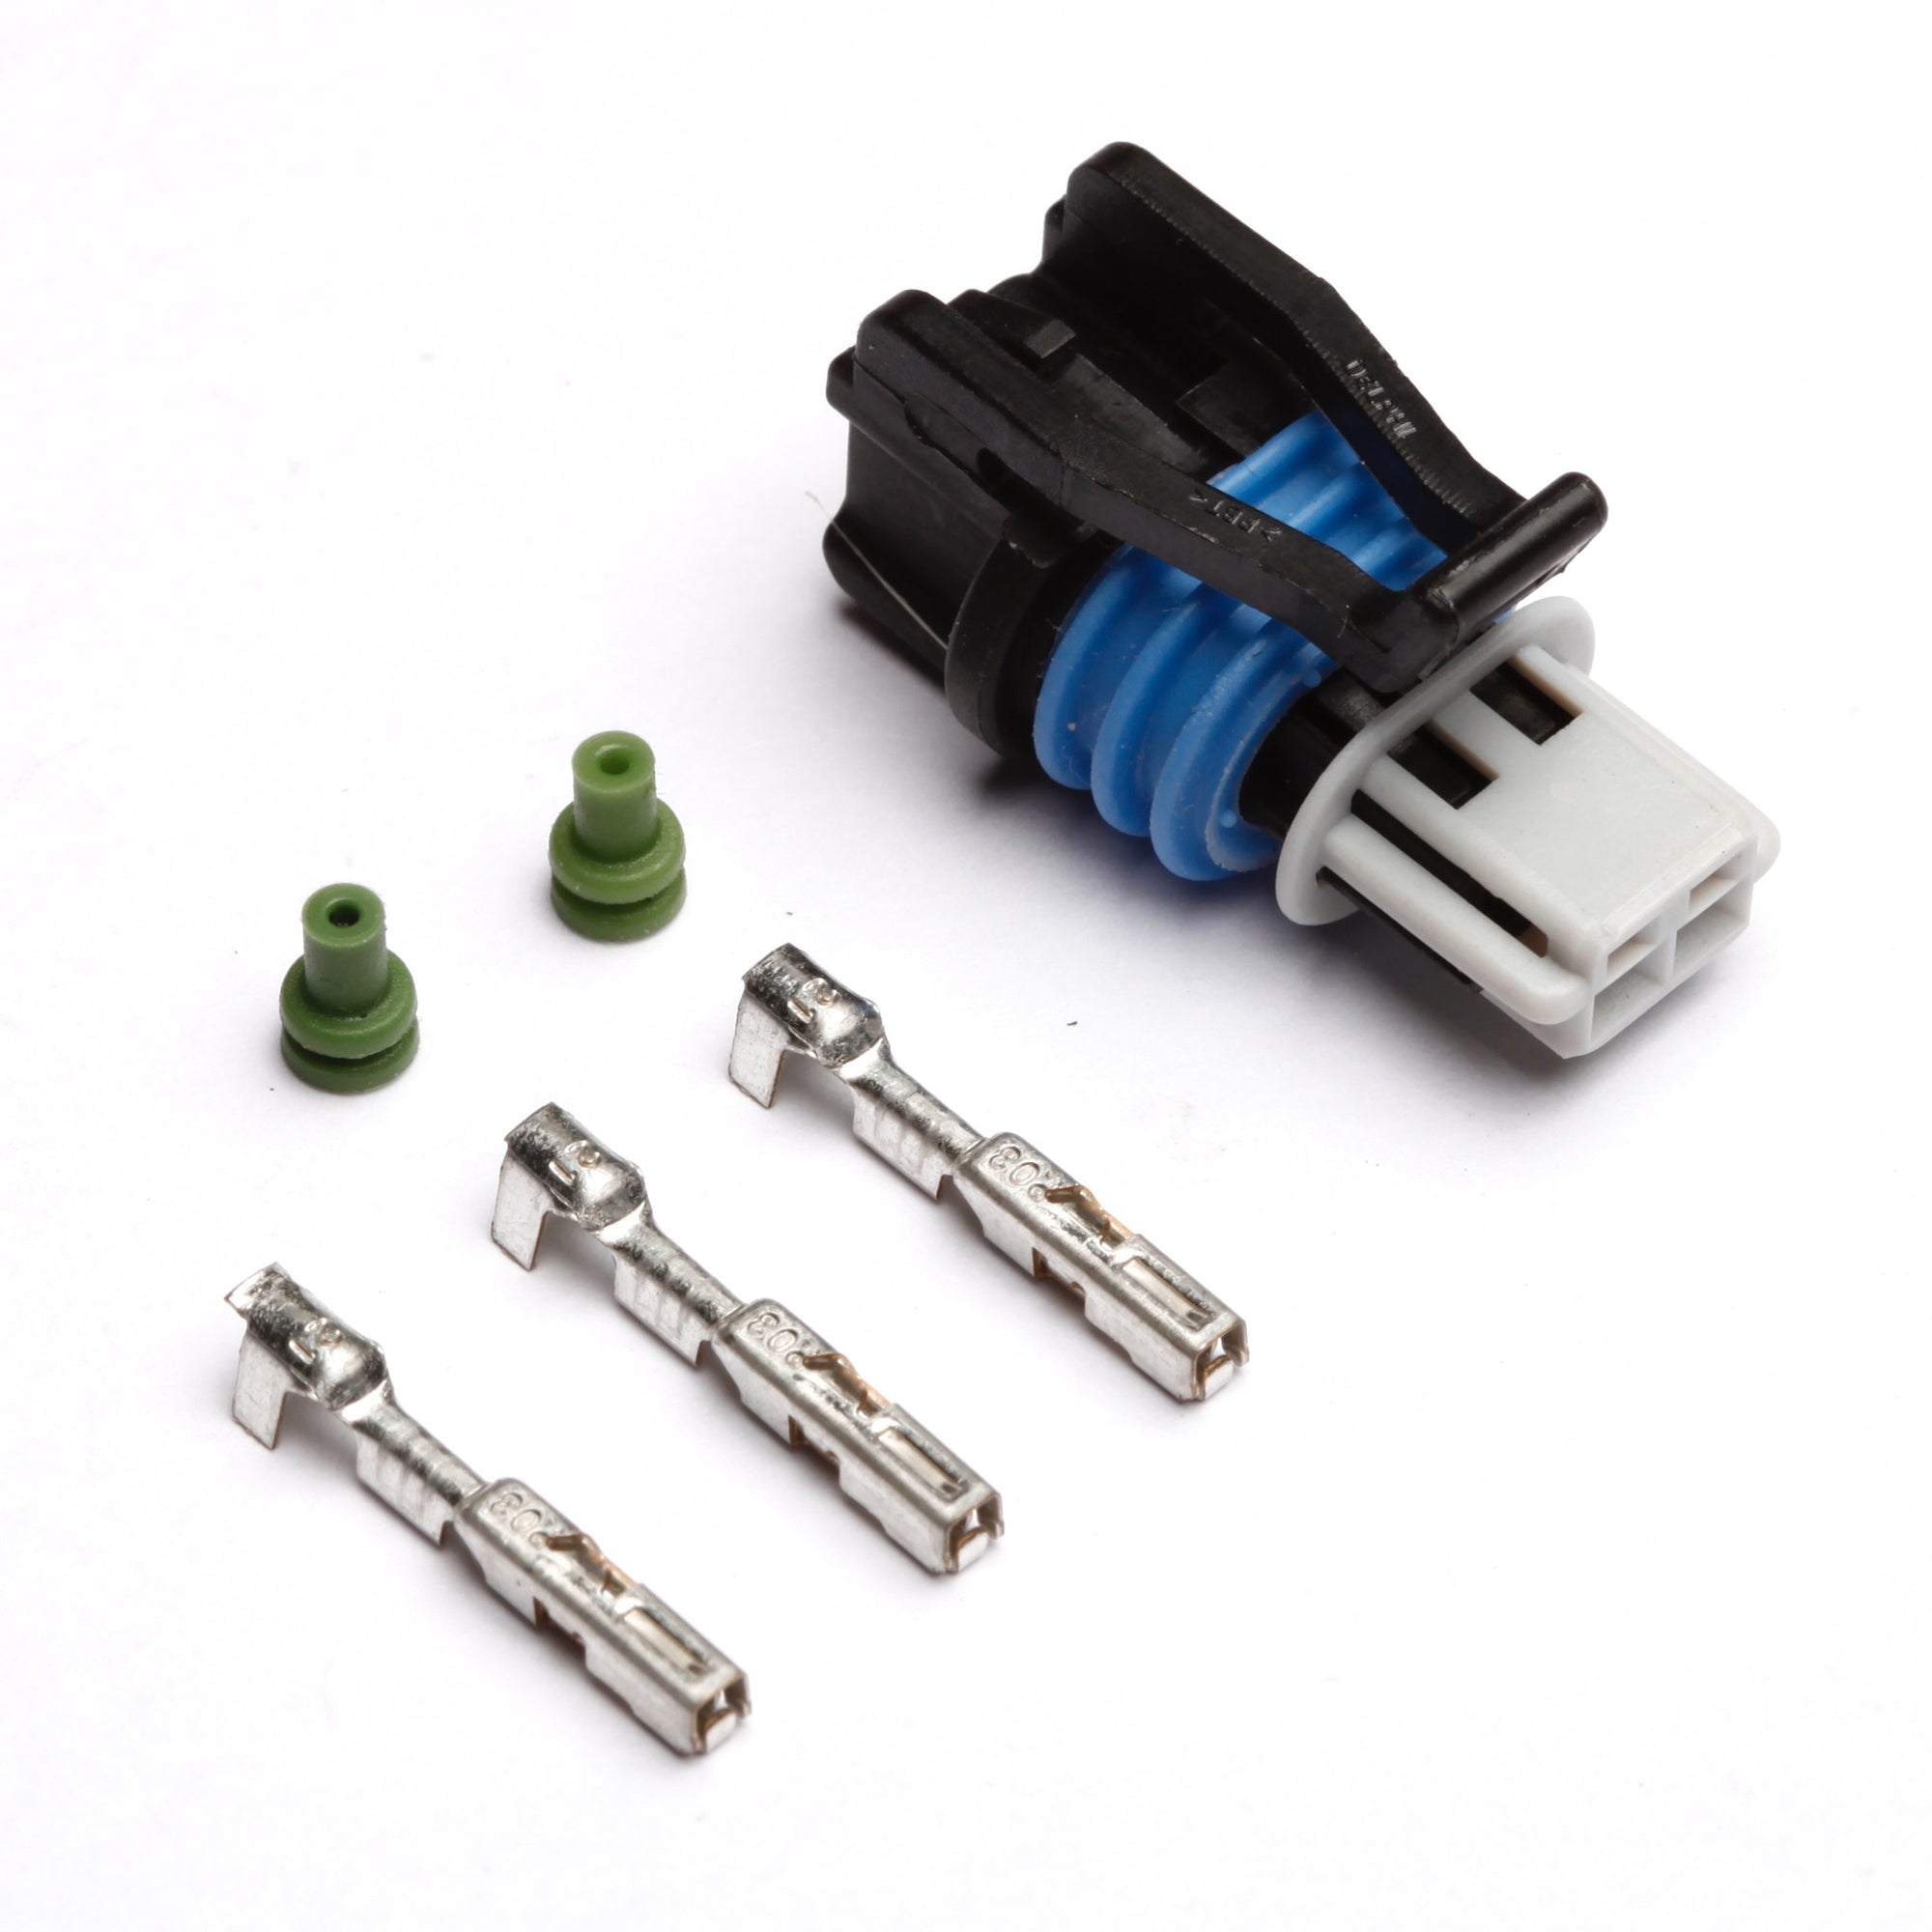 Connectors - GT150 2P Connector Kits